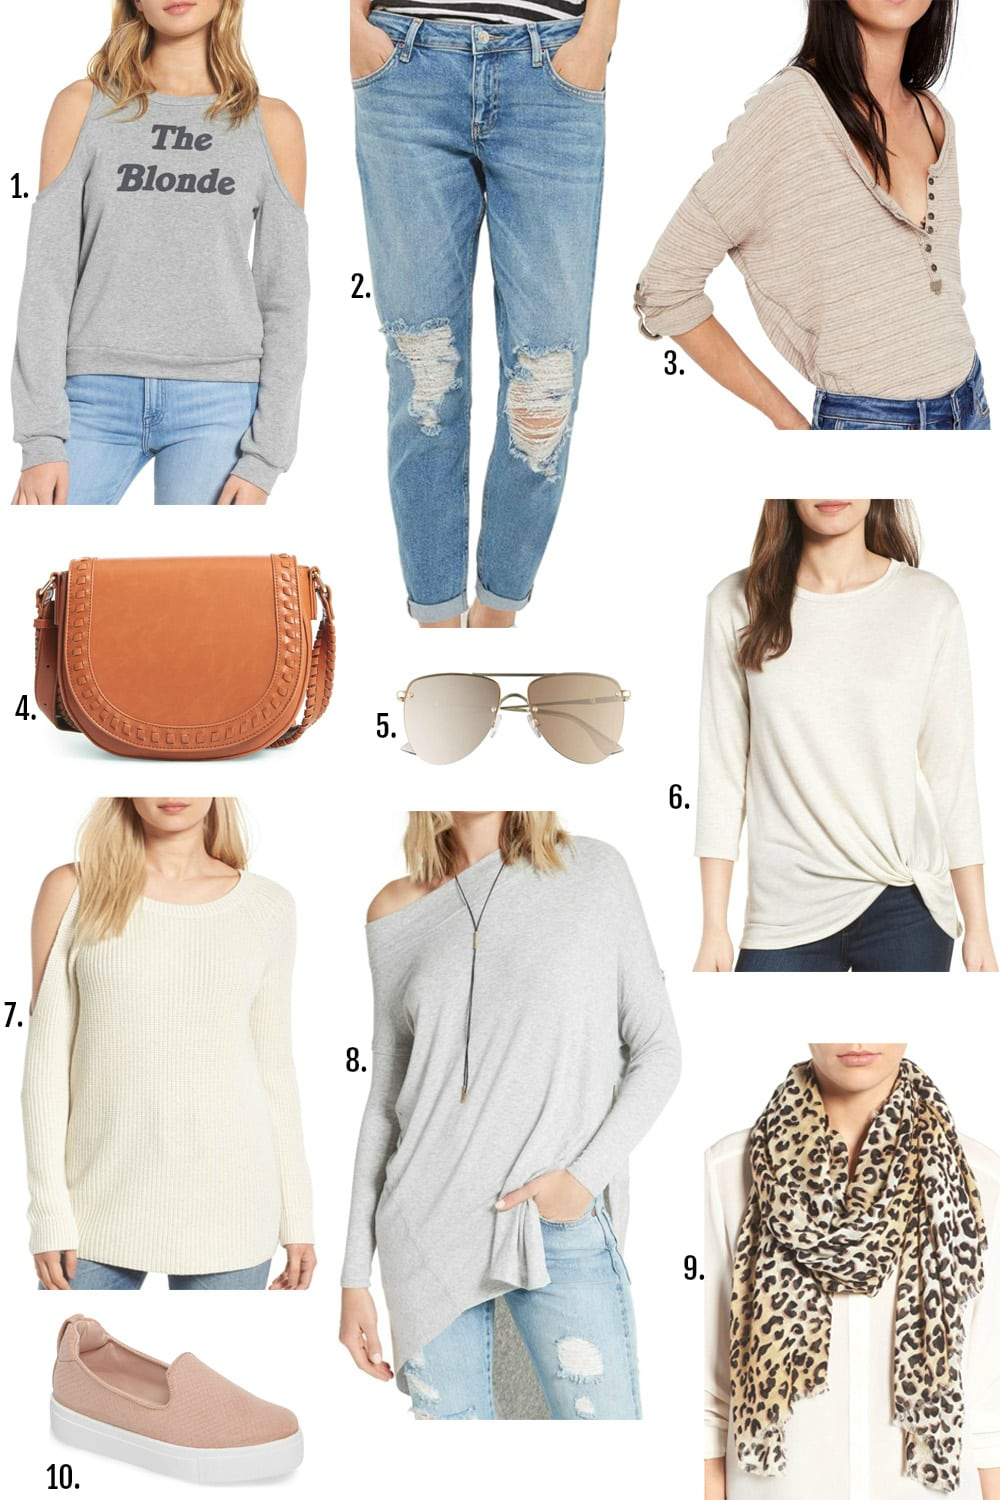 Nordstrom summer sale | fall wardrobe essentials | beauty style blogger Mash elle | sweaters | long sleeve shirt | jeans